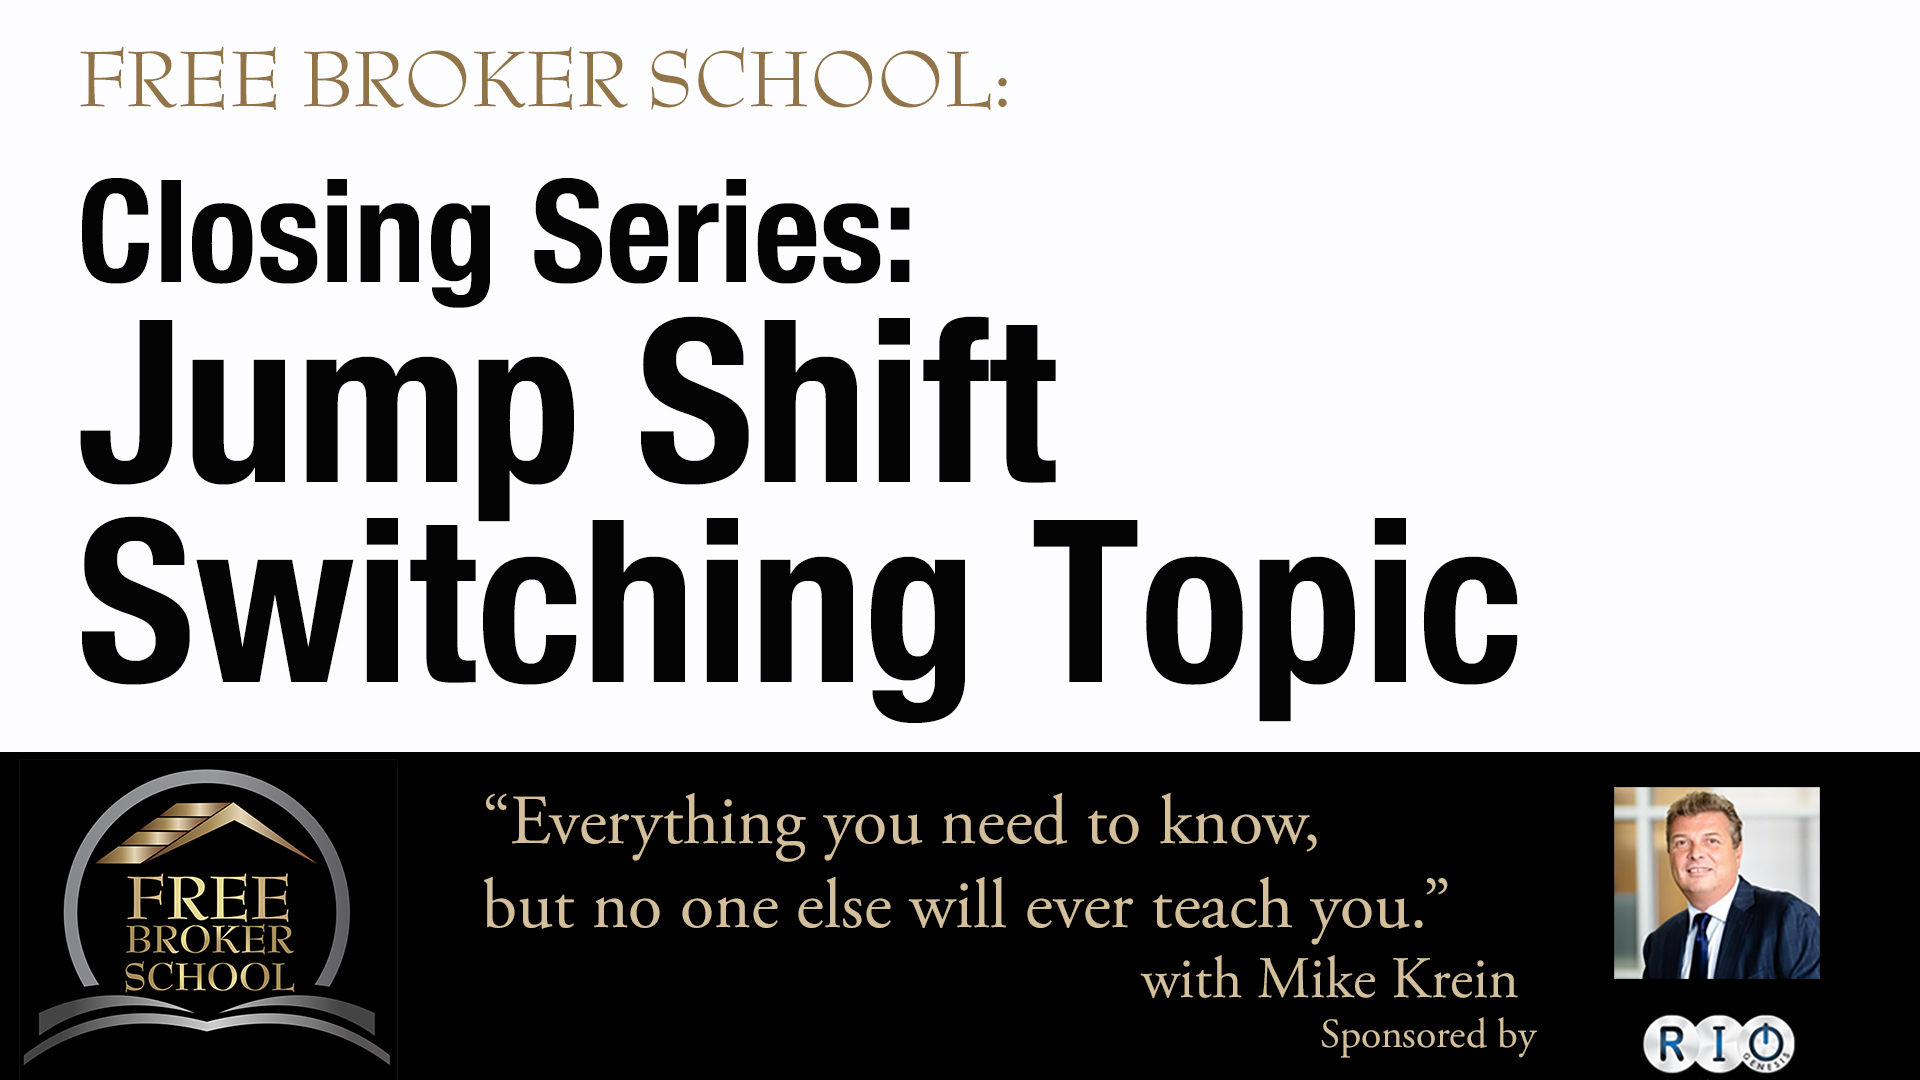 Free Broker School: Closing Series: Jump Shift Switching Topic